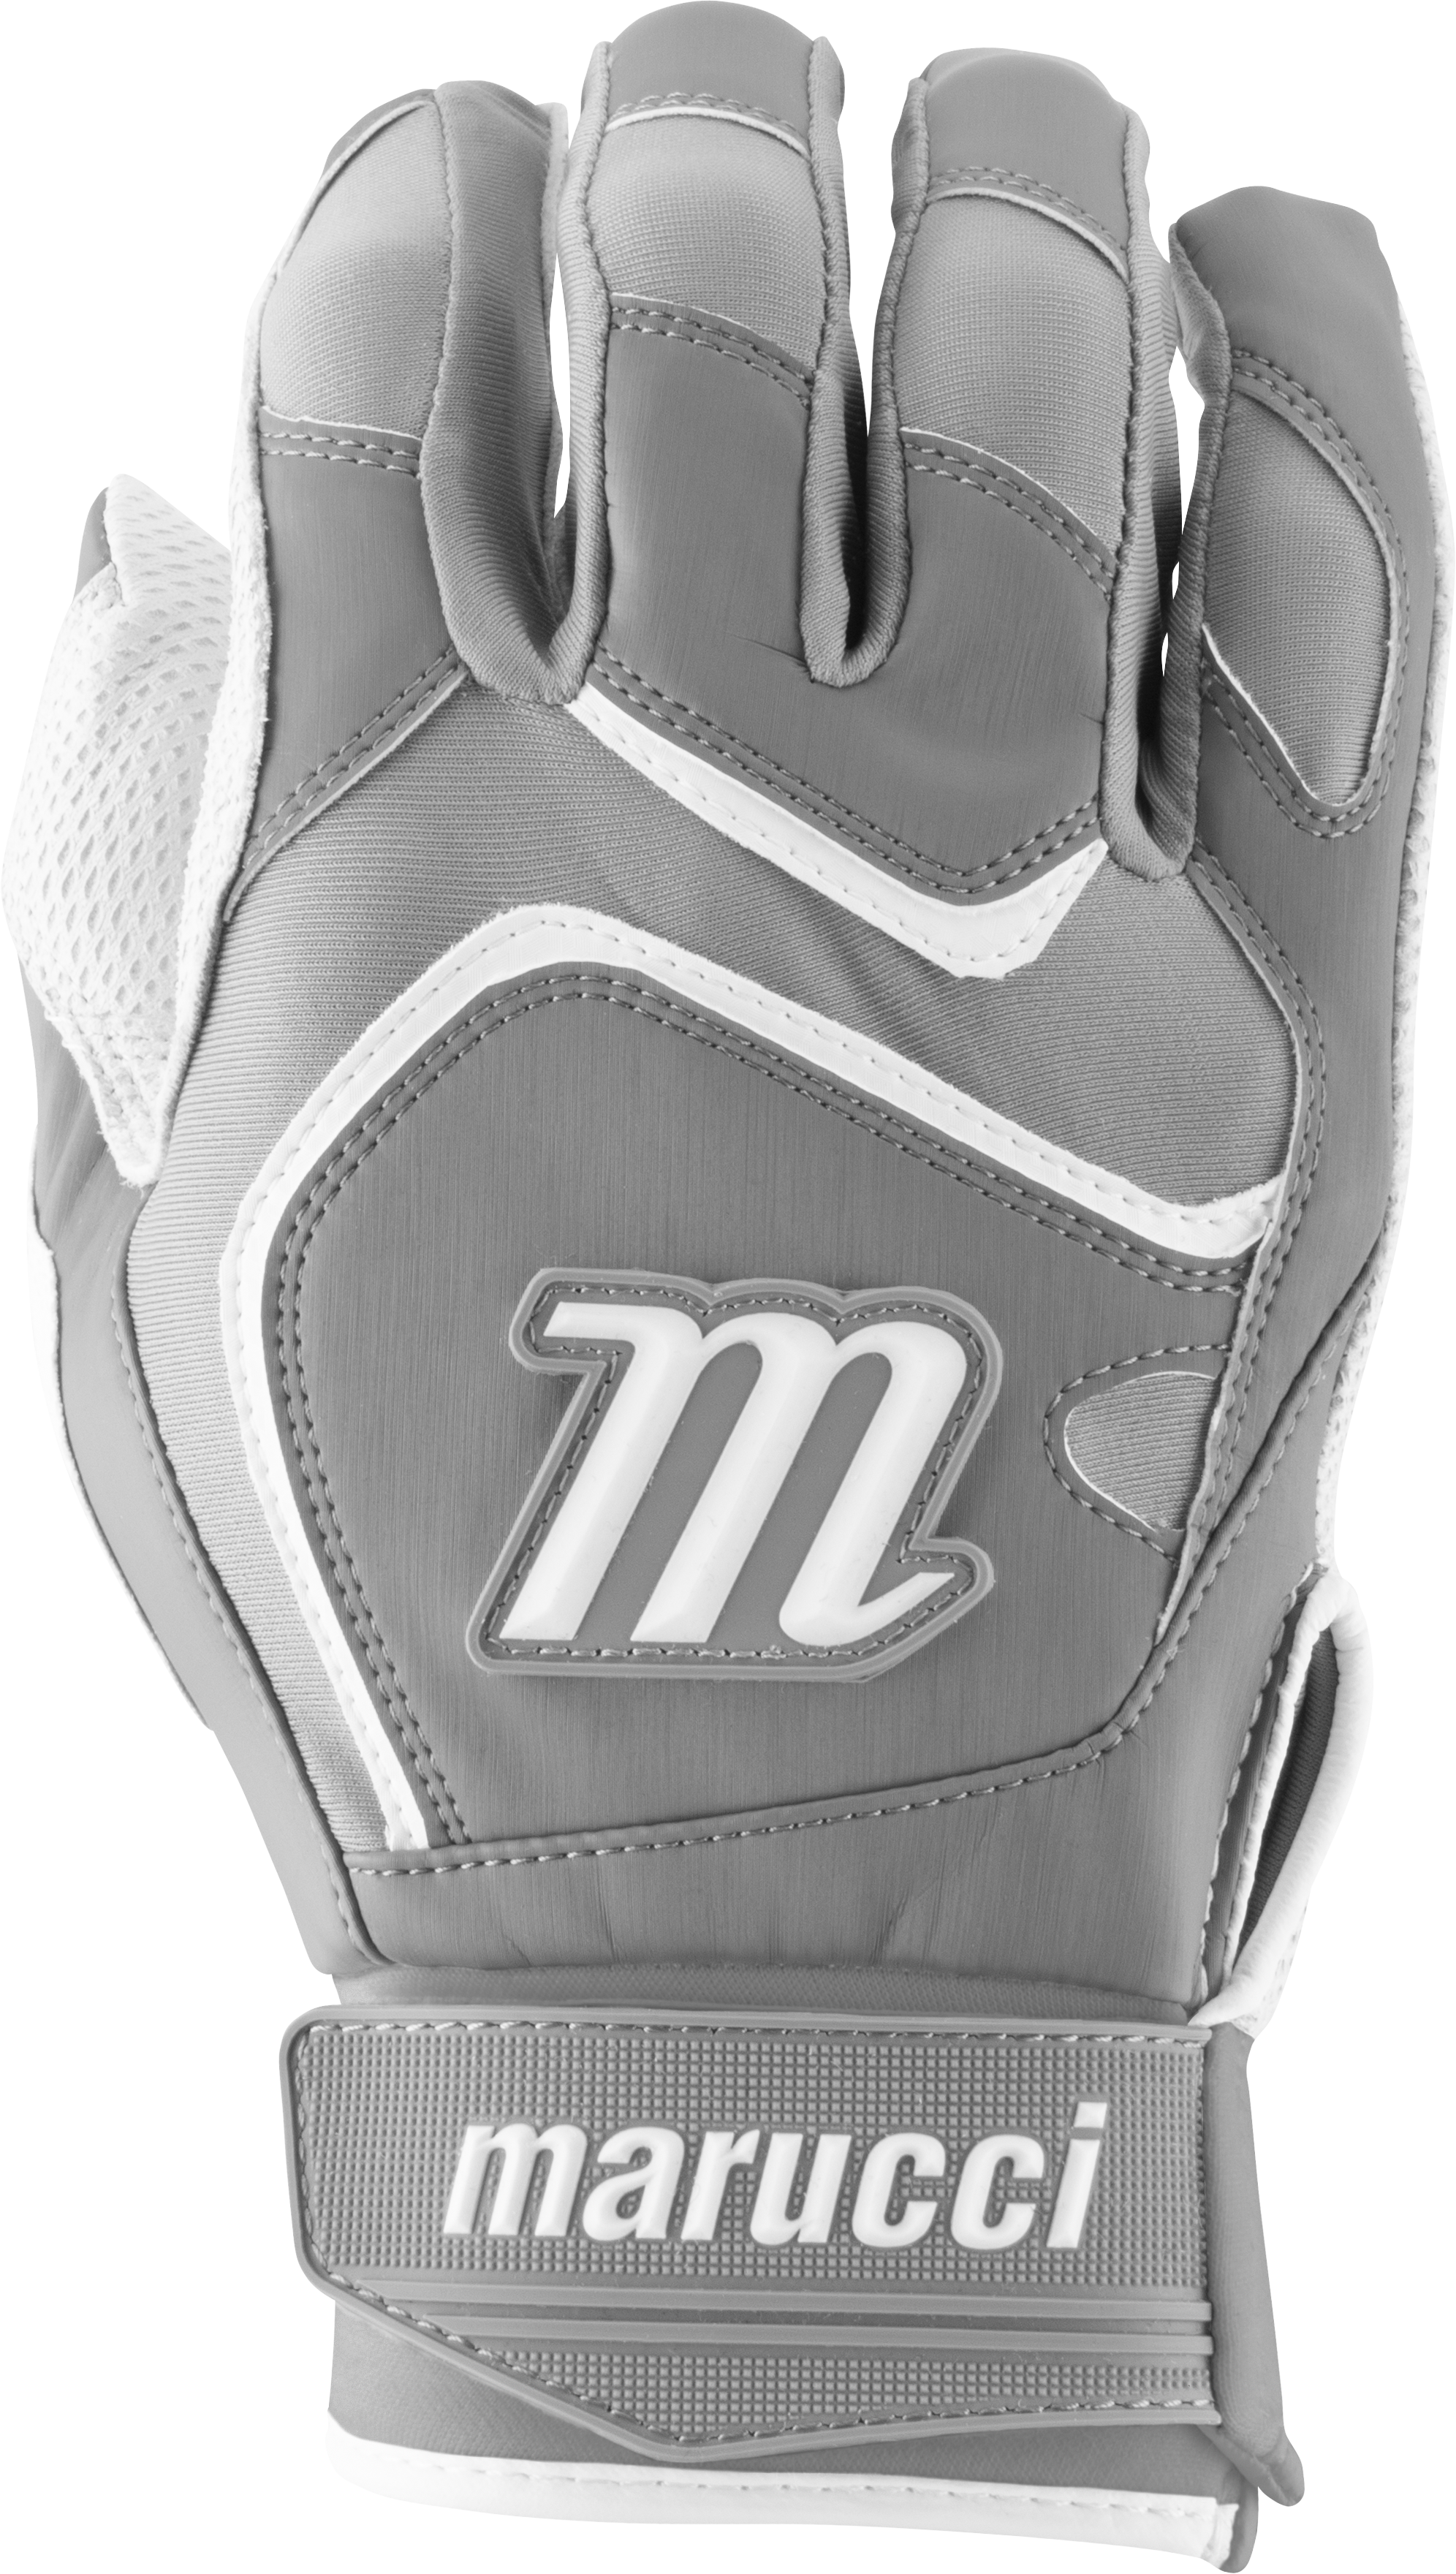 marucci-signature-batting-gloves-mbgsgn2-1-pair-white-grey-adult-medium MBGSGN2-WGY-AM  849817096796 2019 Model MBGSGN2 Consistency And Craftsmanship Commitment To Quality And Understanding